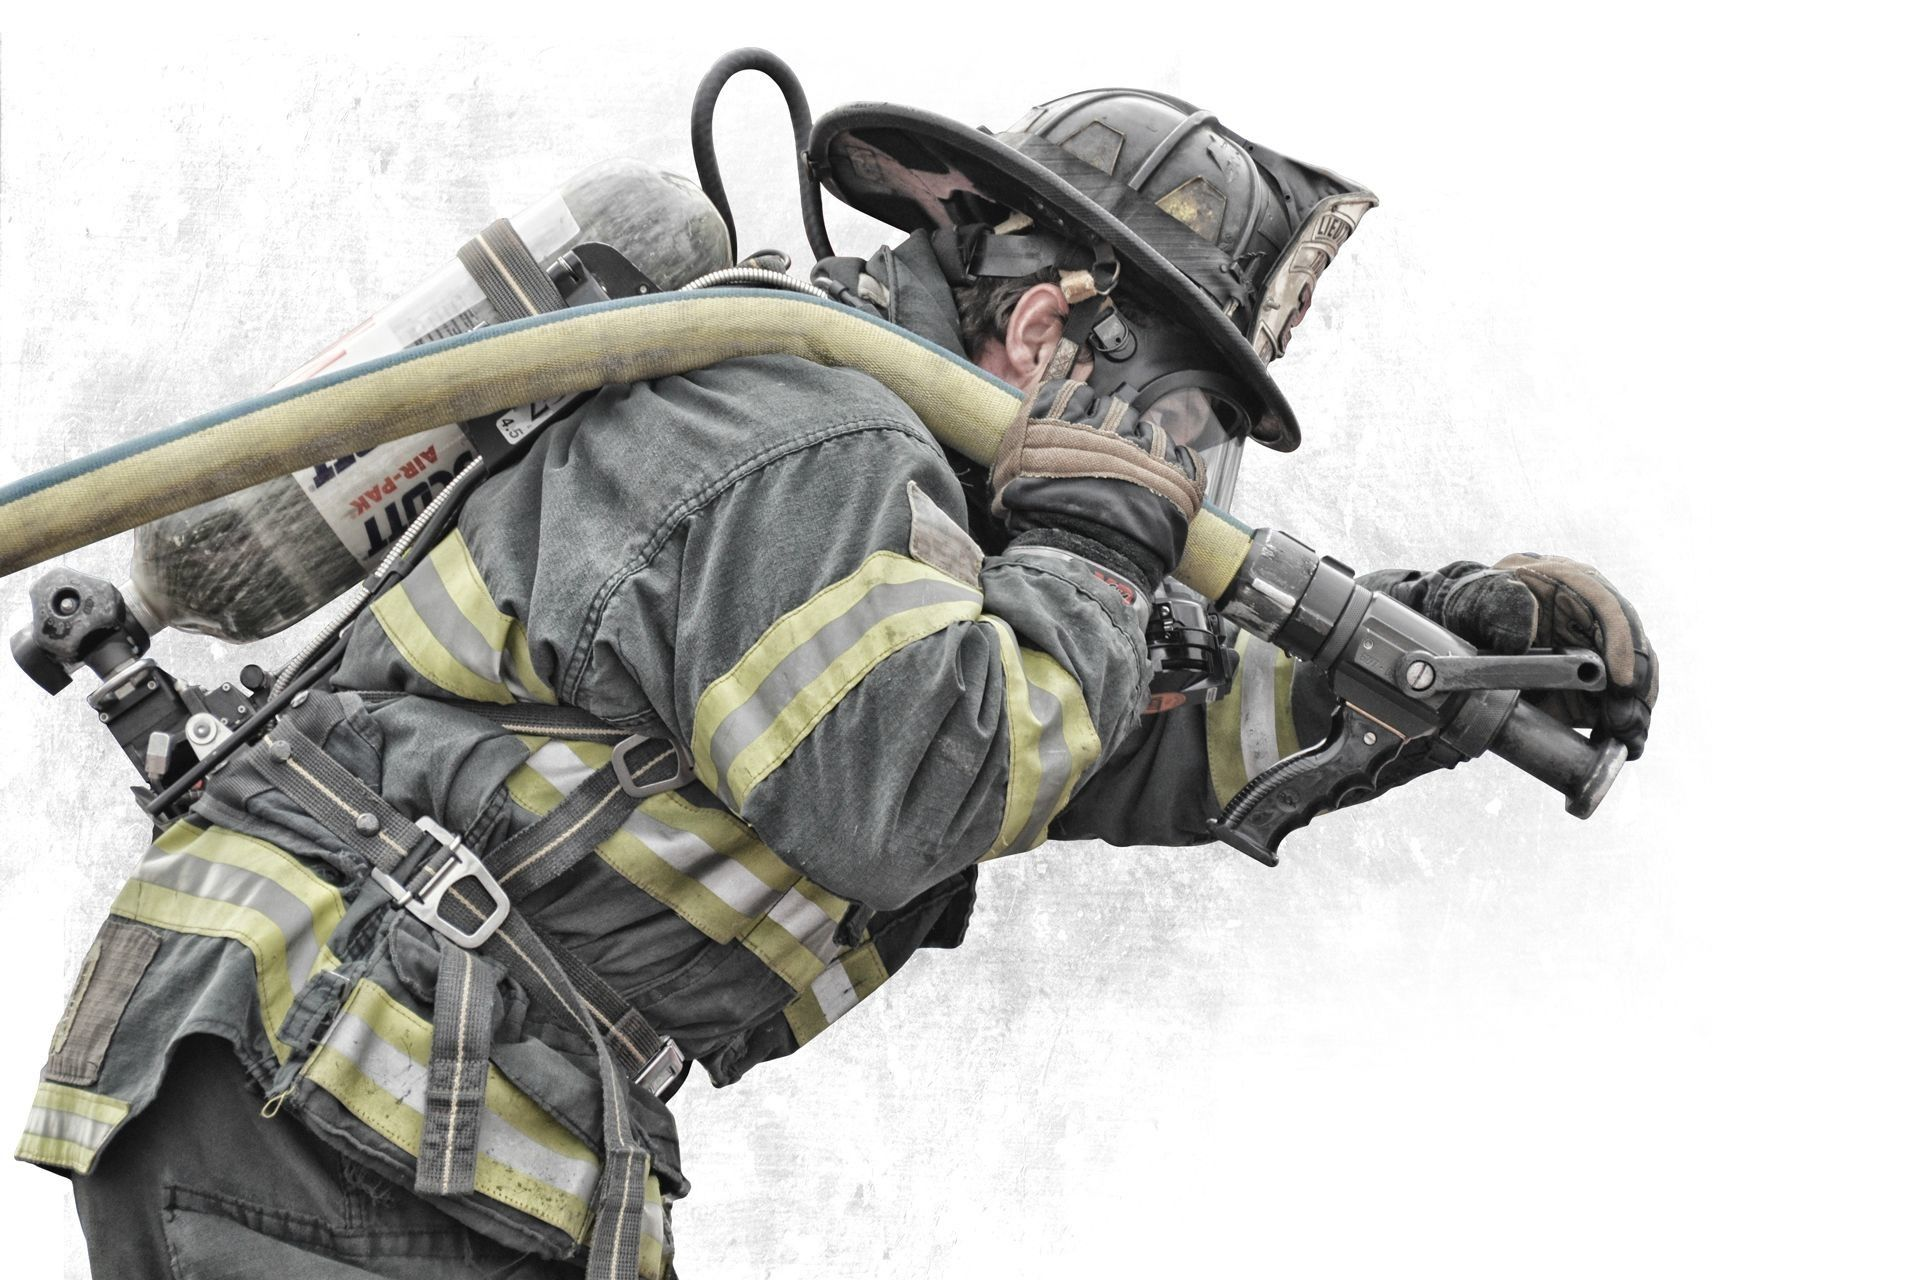 Res 1920x1280 Free Firefighter Wallpaper For Phone 1920a 1280 Firefighting Wallpapers 37 Wallpapers Adorab Firefighter Art Firefighter Firefighter Tattoo